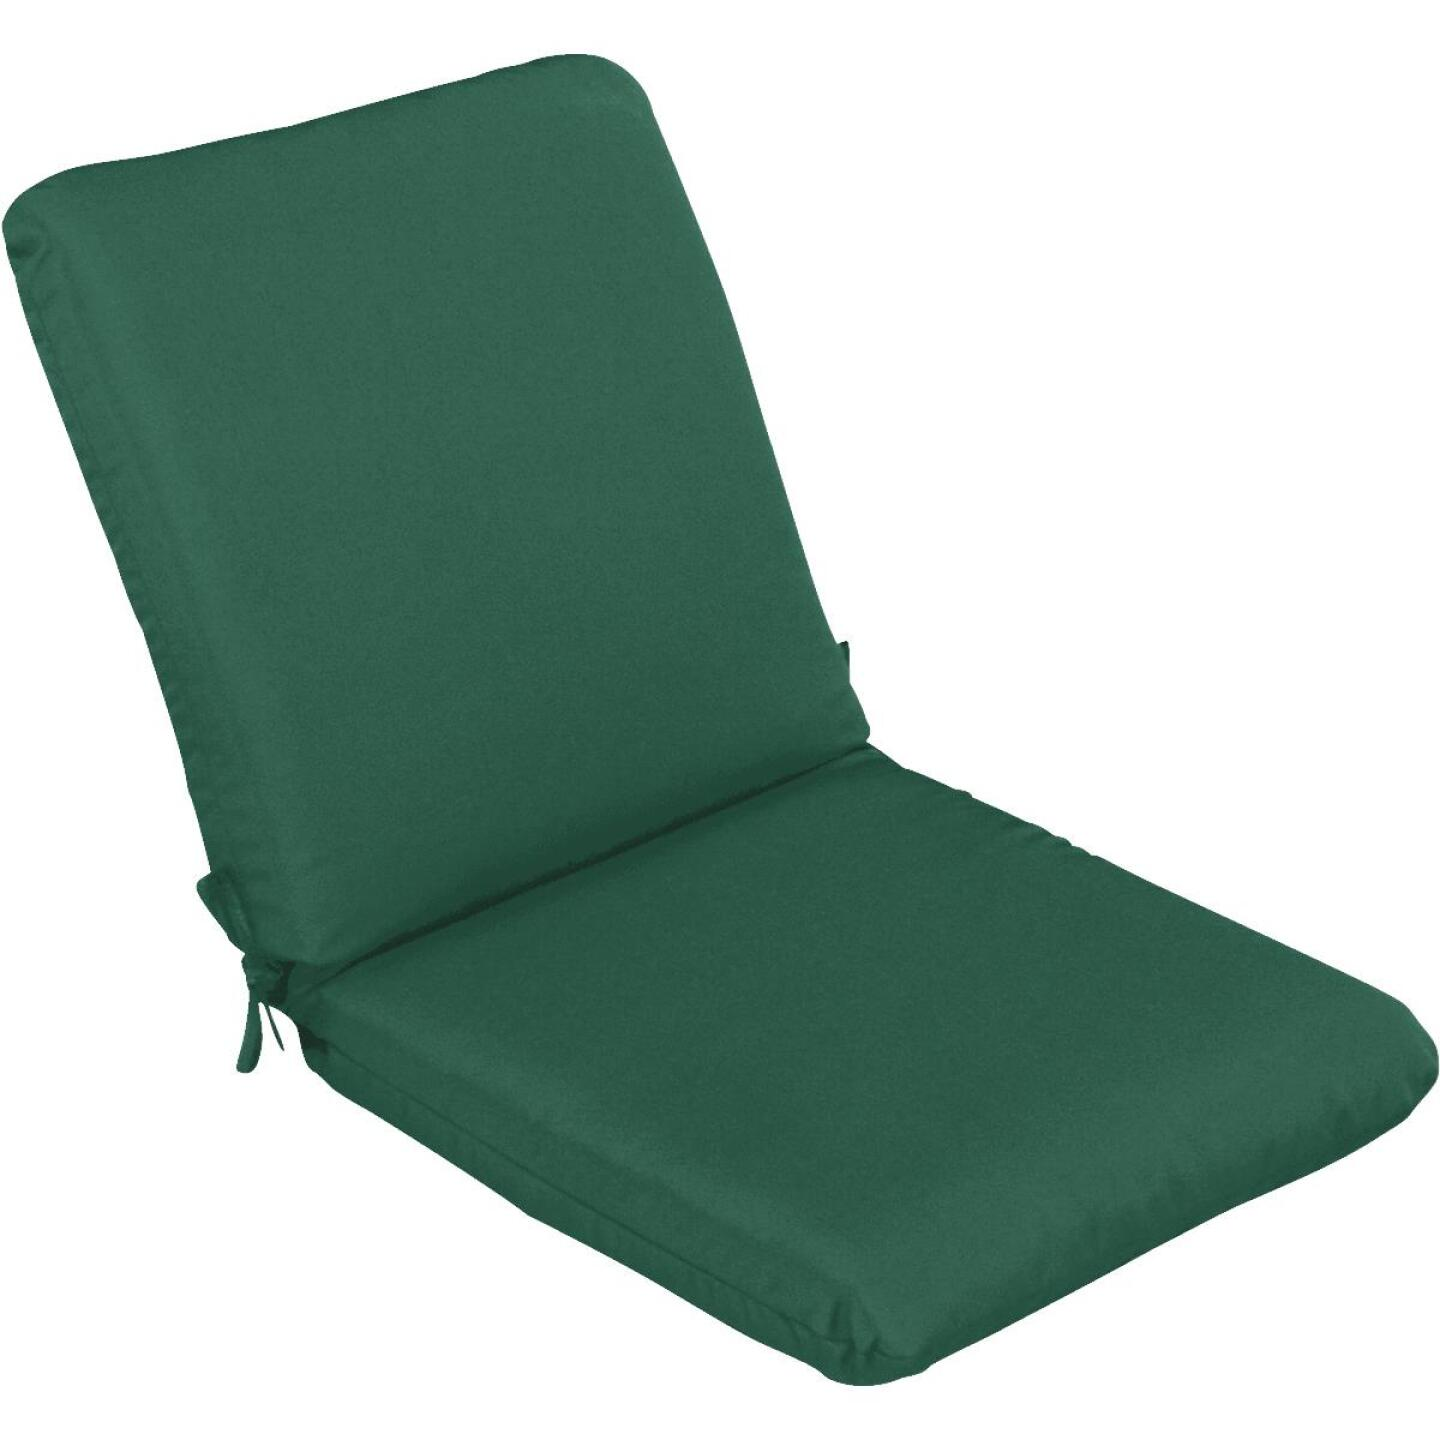 Casual Cushion 23 In. W. x 3.5 In. H. x 44 In. L. Green Chair Cushion Image 1